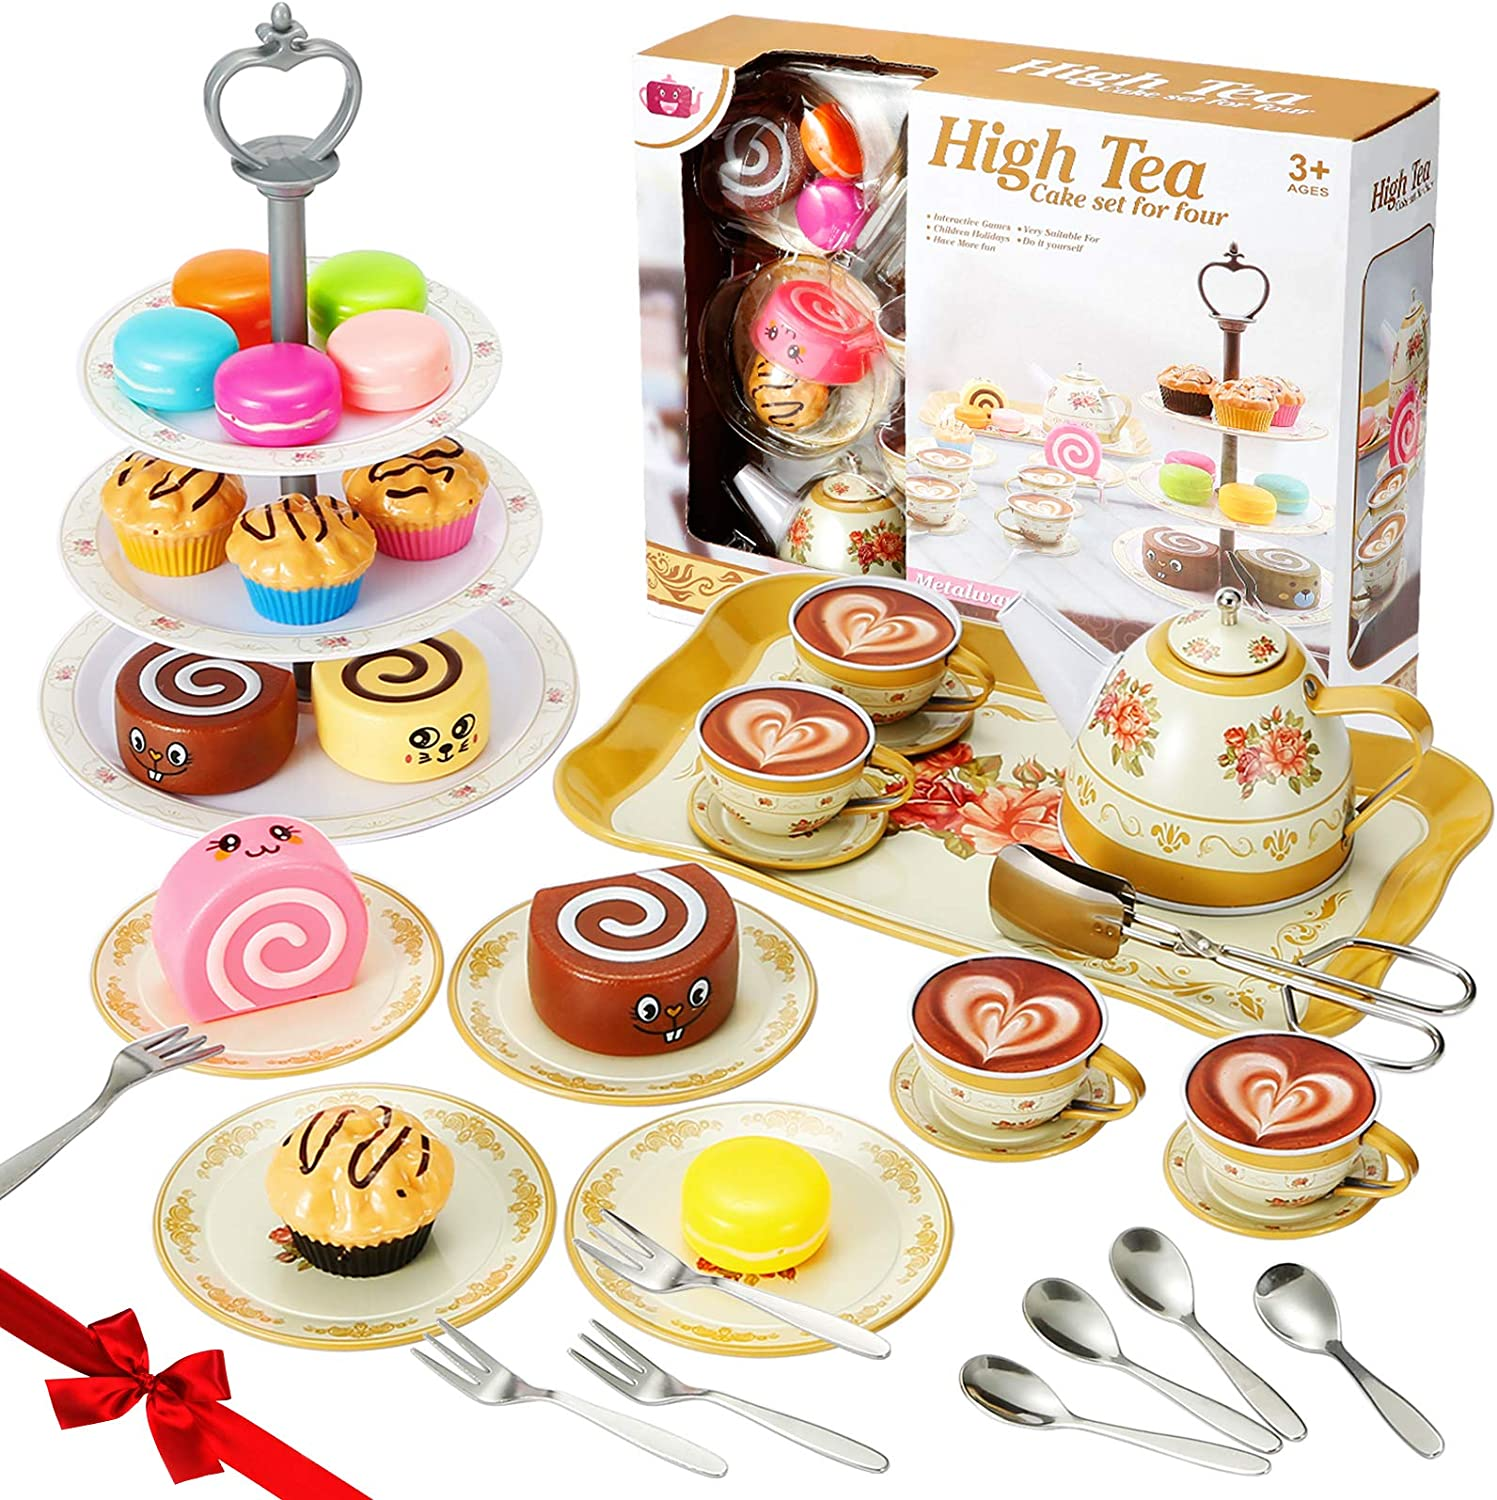 Tea Party Set for Little Girls,Kitchen Pretend Play Toys Tea Set,Princess Play Tea Time With Plastic Tea Cup Dishes,Cake Set Stand,Play Food Set for Toddlers Kids,Child,Play Kitchen Accessories(43PC)